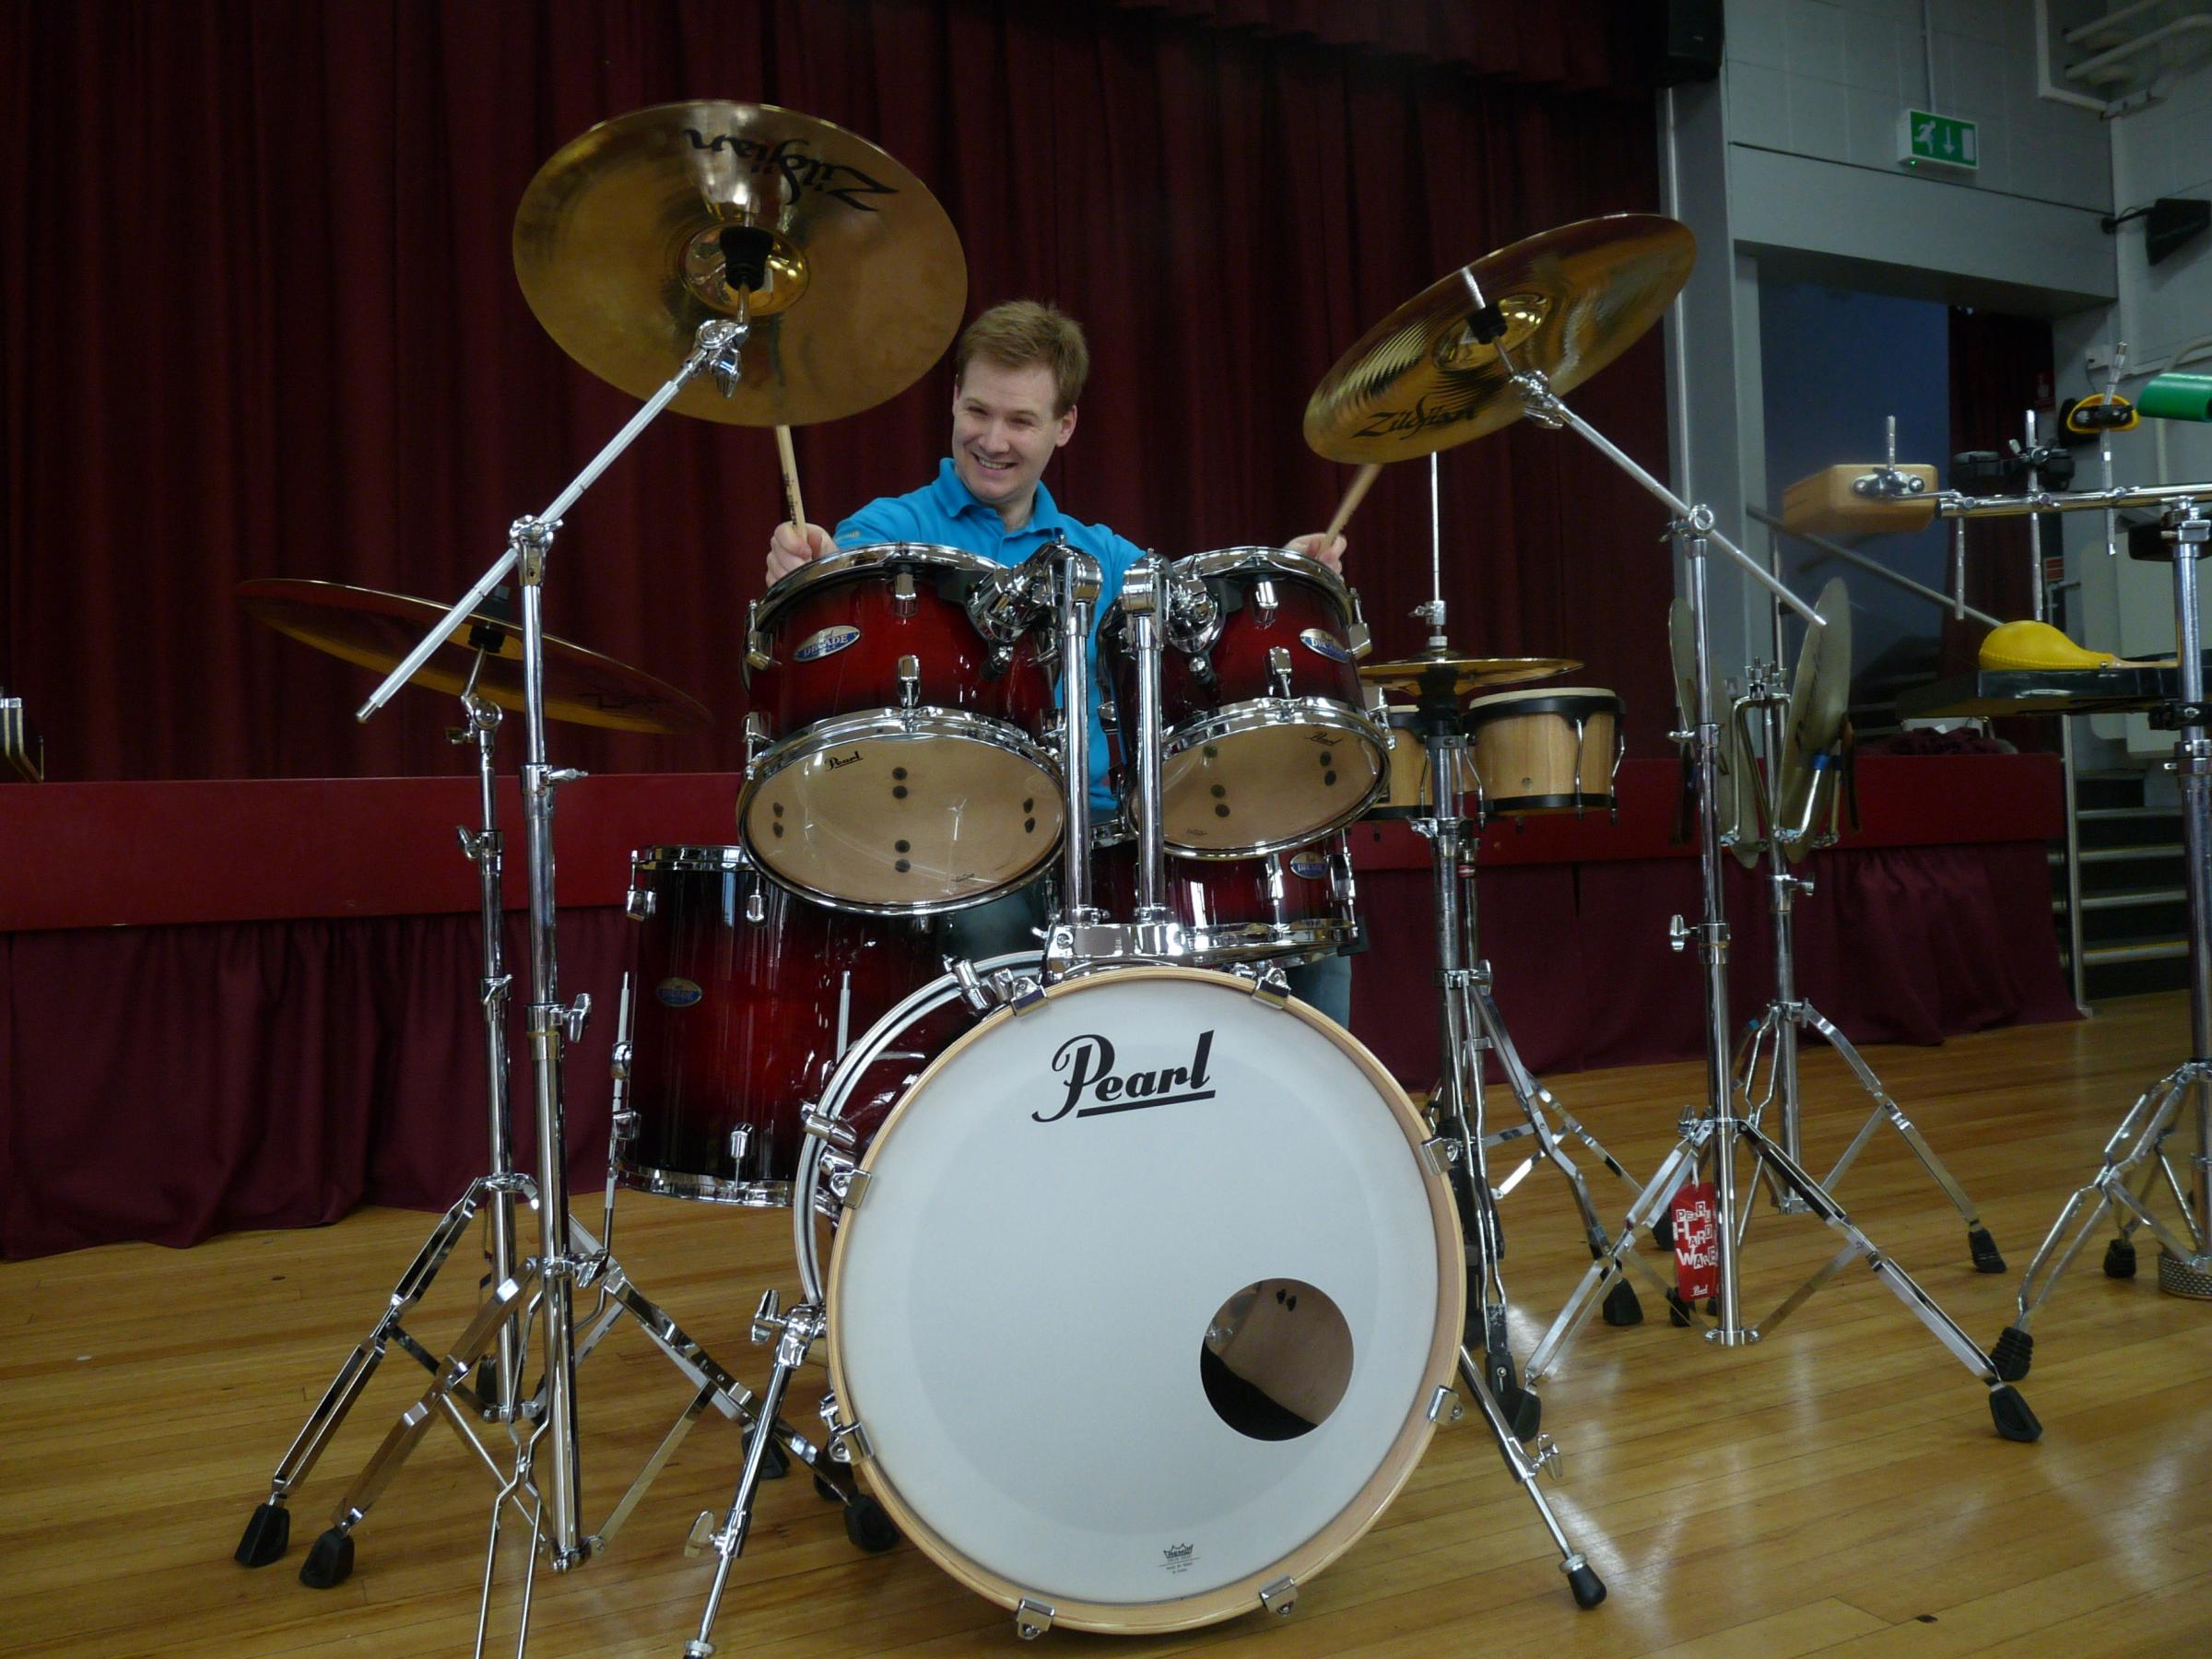 Max Beswick playing the drums